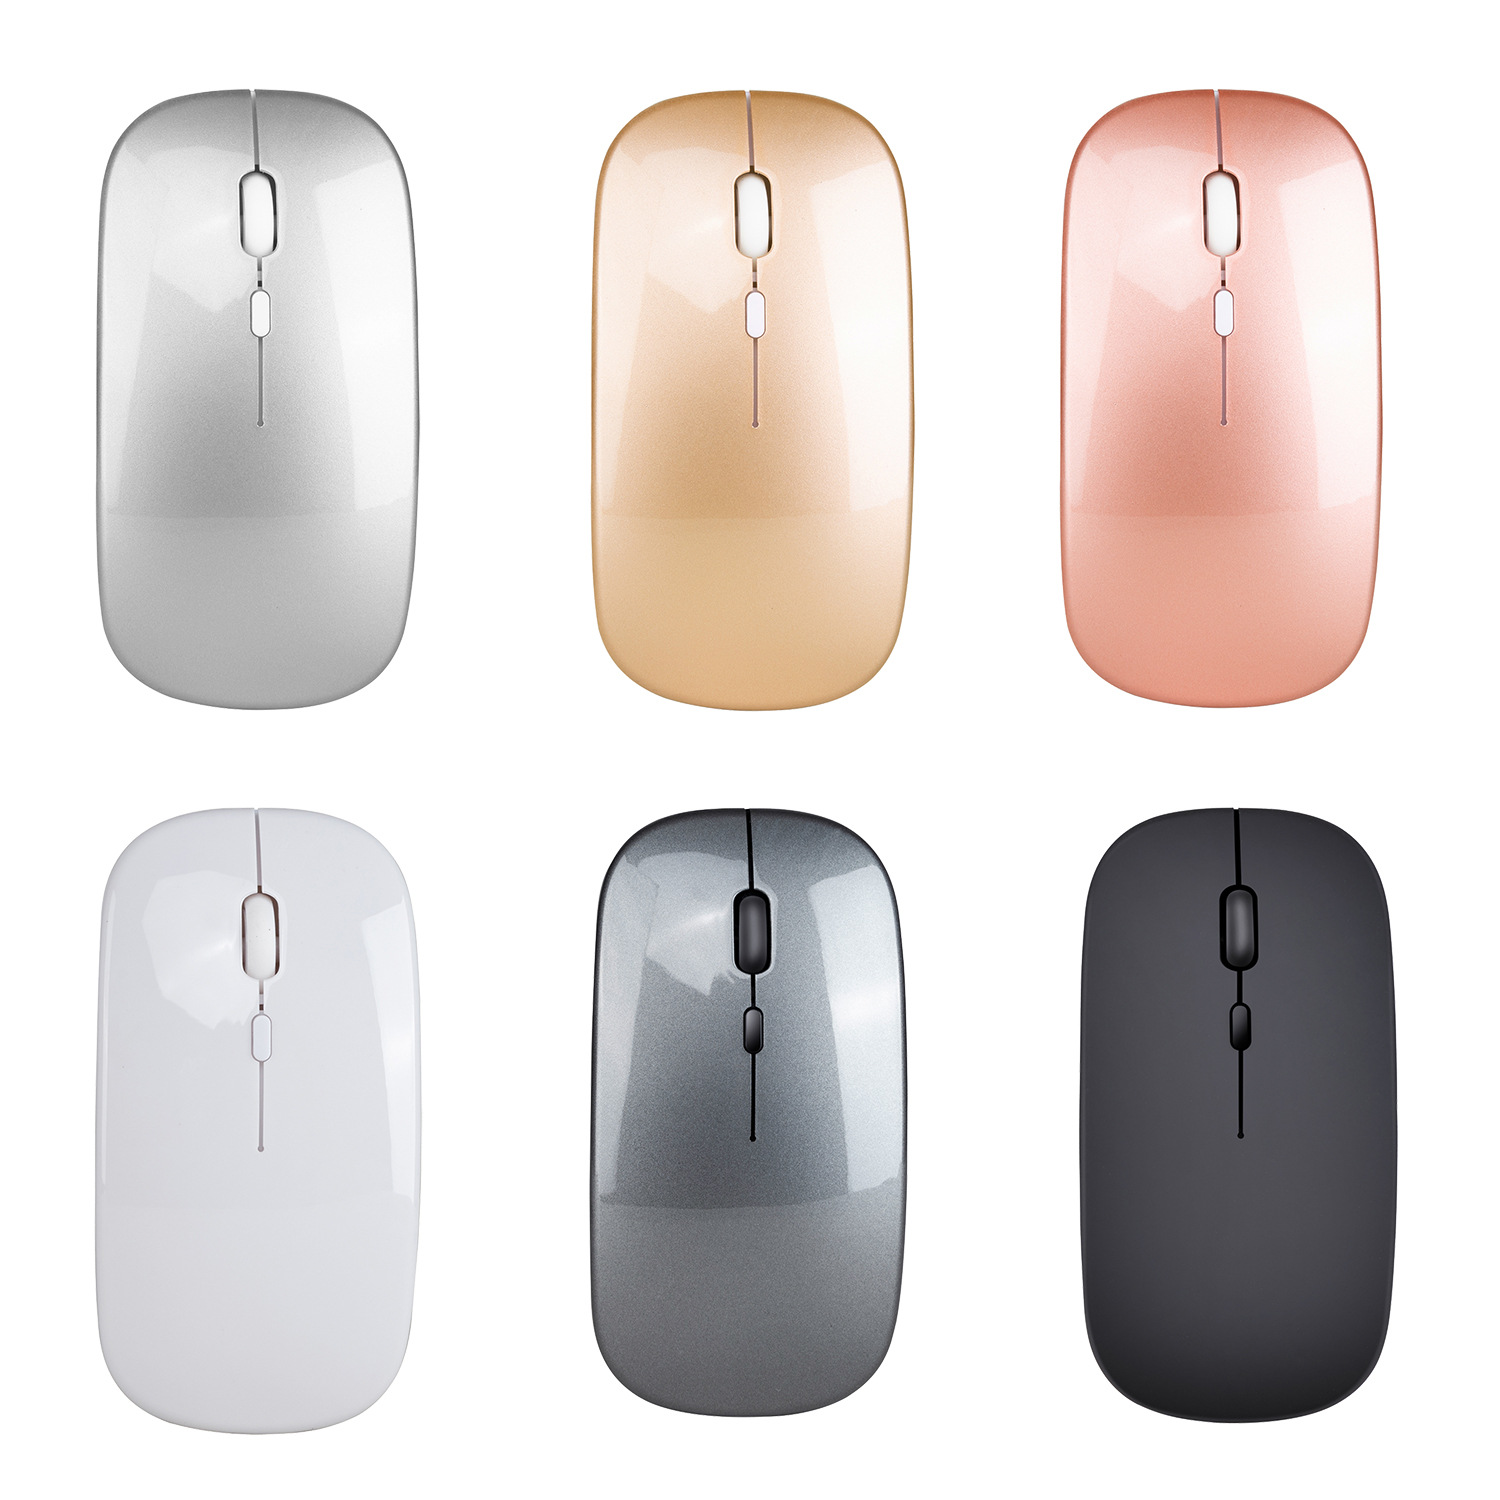 New Wireless Mouse Computer Bluetooth Mouse Silent PC Mause Rechargeable Ergonomic Mouse